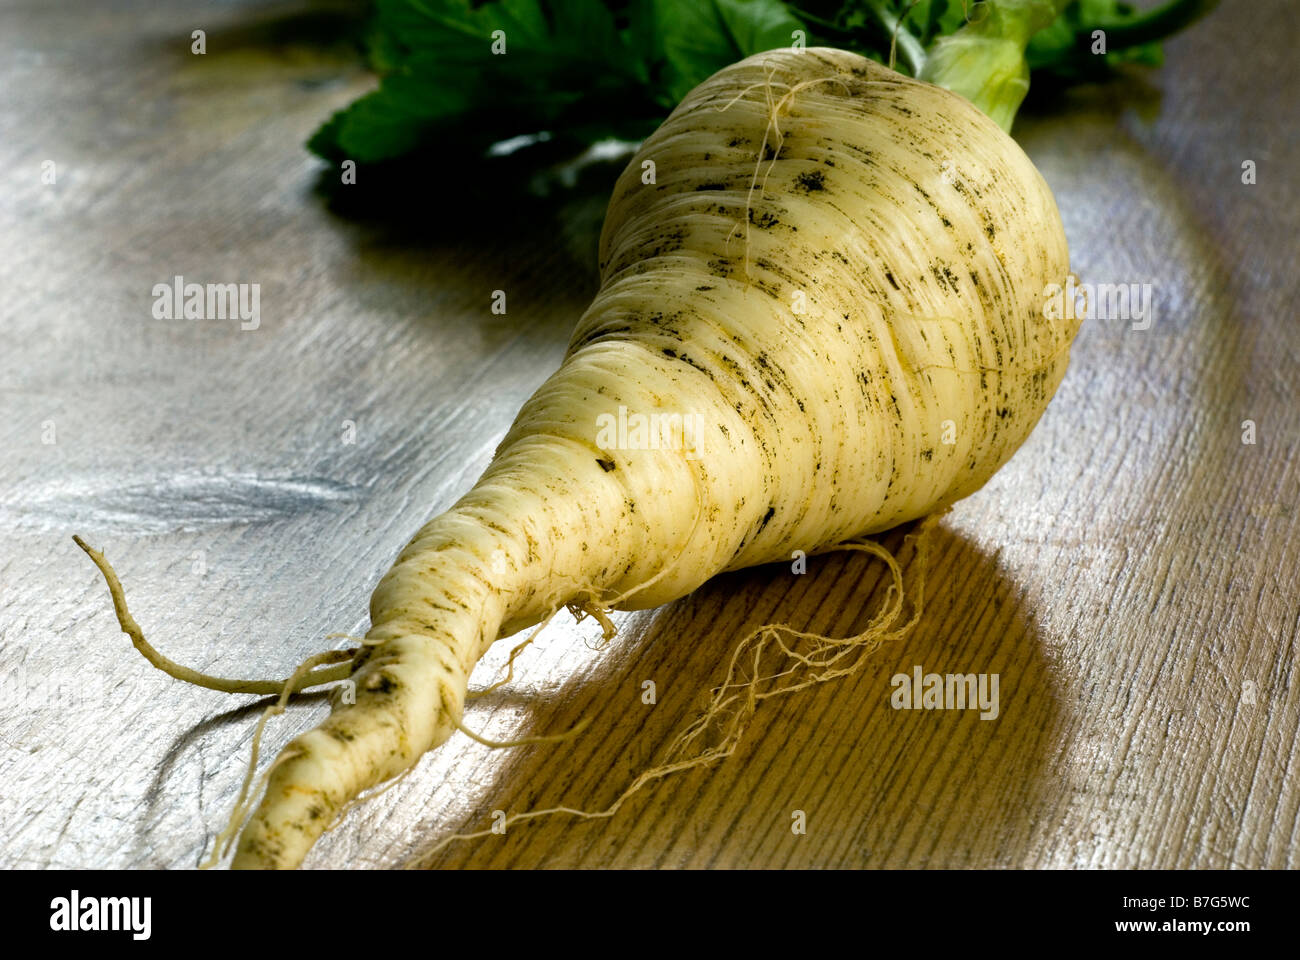 A FRESHLY  PULLED PARSNIP COMPLETE WITH LEAVES AND EARTH SHOT ON A WOODEN KITCHEN TABLE - Stock Image